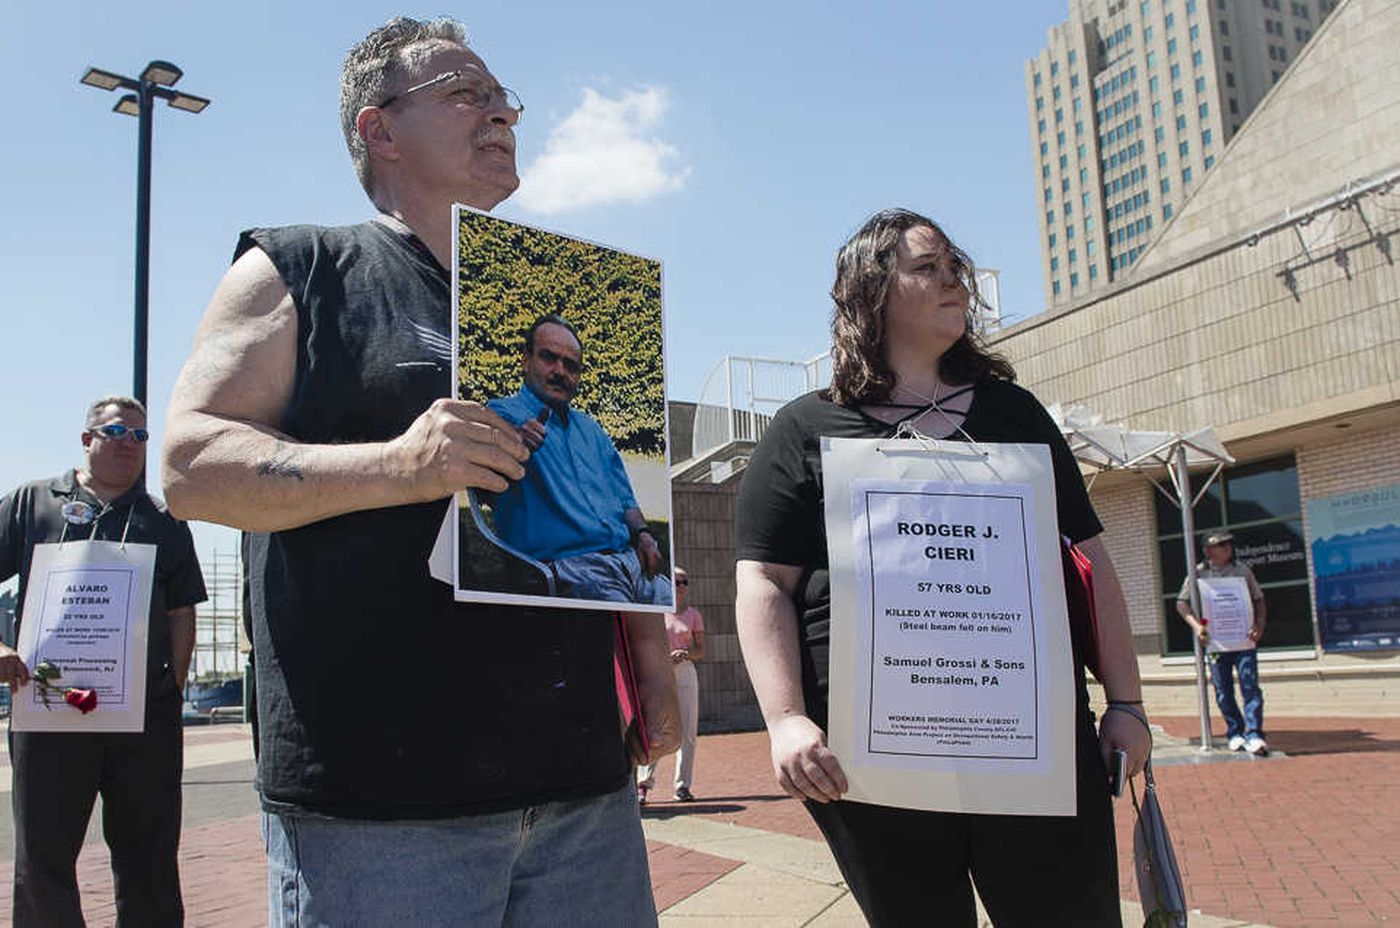 In Philly: A day to weep for those who died at work